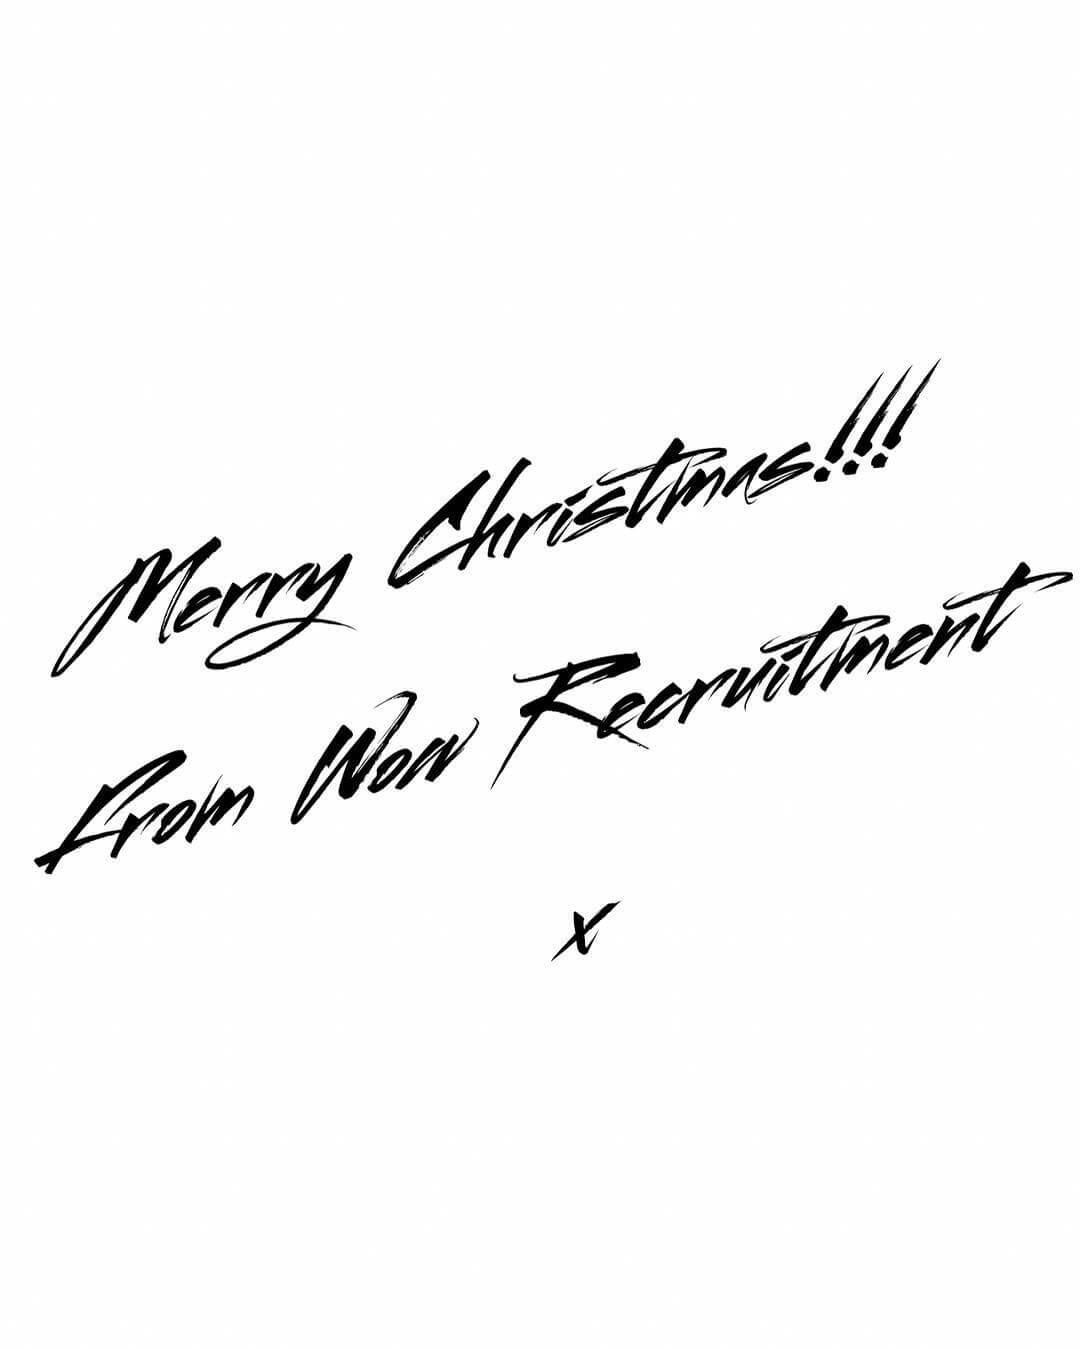 Wishing you and your family a very Merry Christmas and a happy and safe New Year �